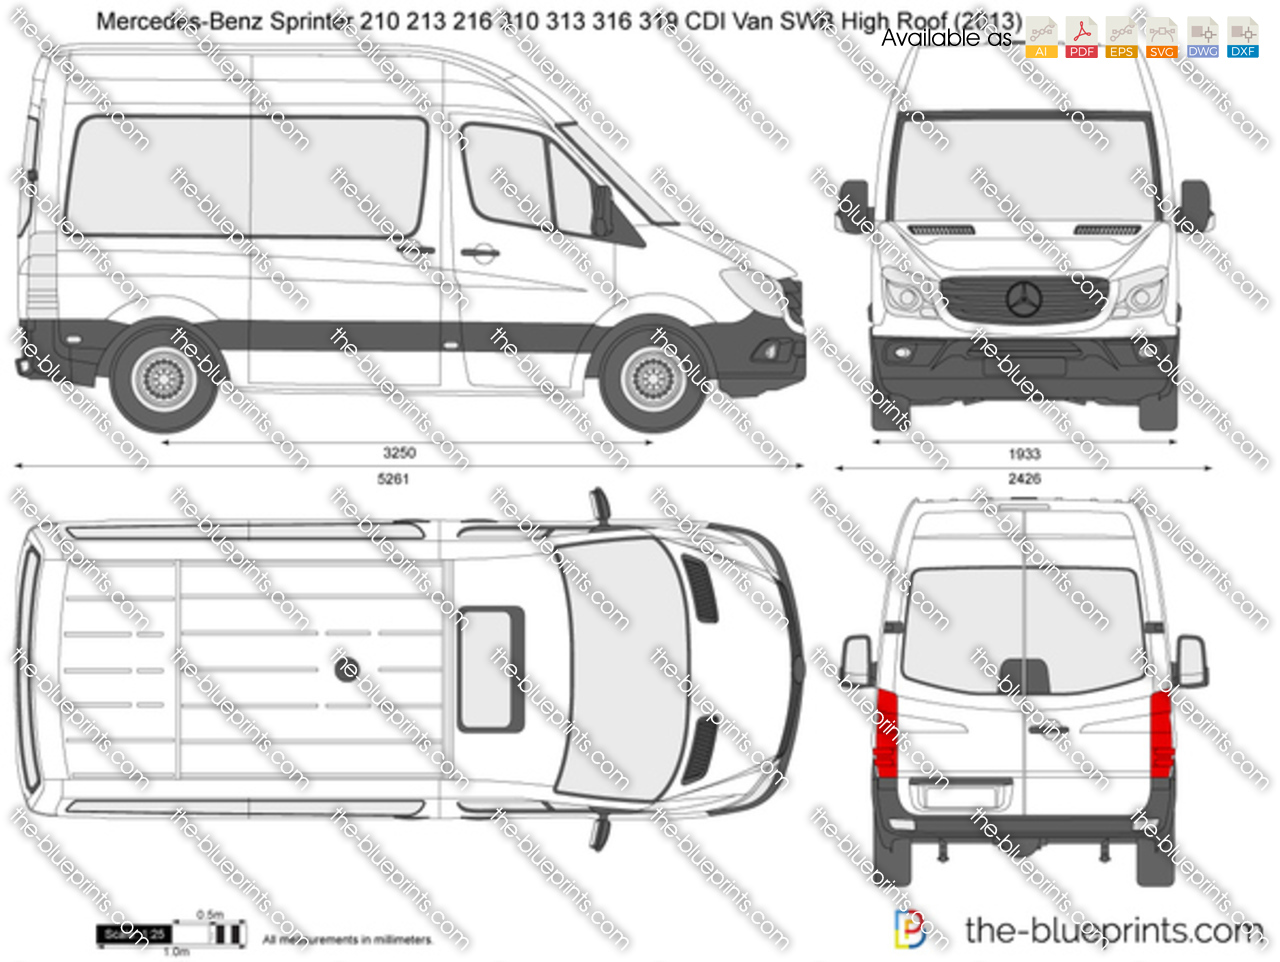 mercedes benz sprinter 210 213 216 310 313 316 319 cdi van swb high roof vector drawing. Black Bedroom Furniture Sets. Home Design Ideas